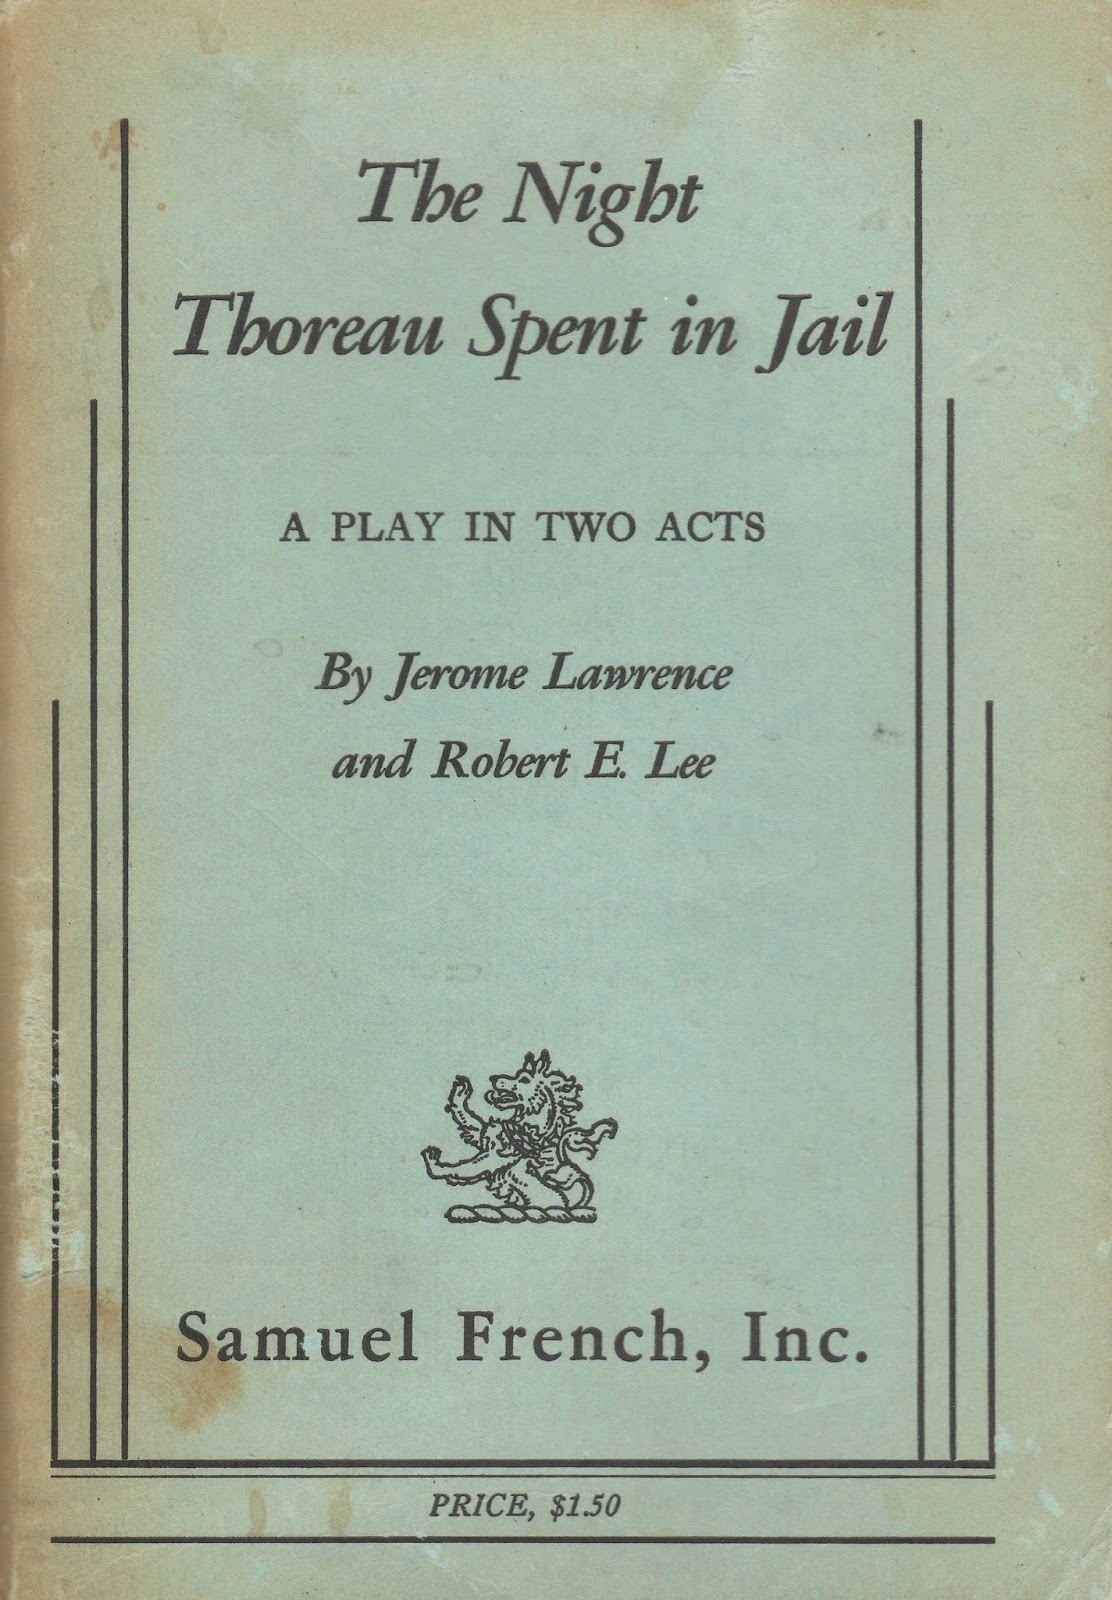 an analysis of the main theme of jerome lawrence and robert e lee Inherit the wind: biography: jerome lawrence, free study guides and book notes including comprehensive chapter analysis, complete summary analysis, author biography information, character profiles, theme analysis, metaphor analysis, and top ten quotes on classic literature.